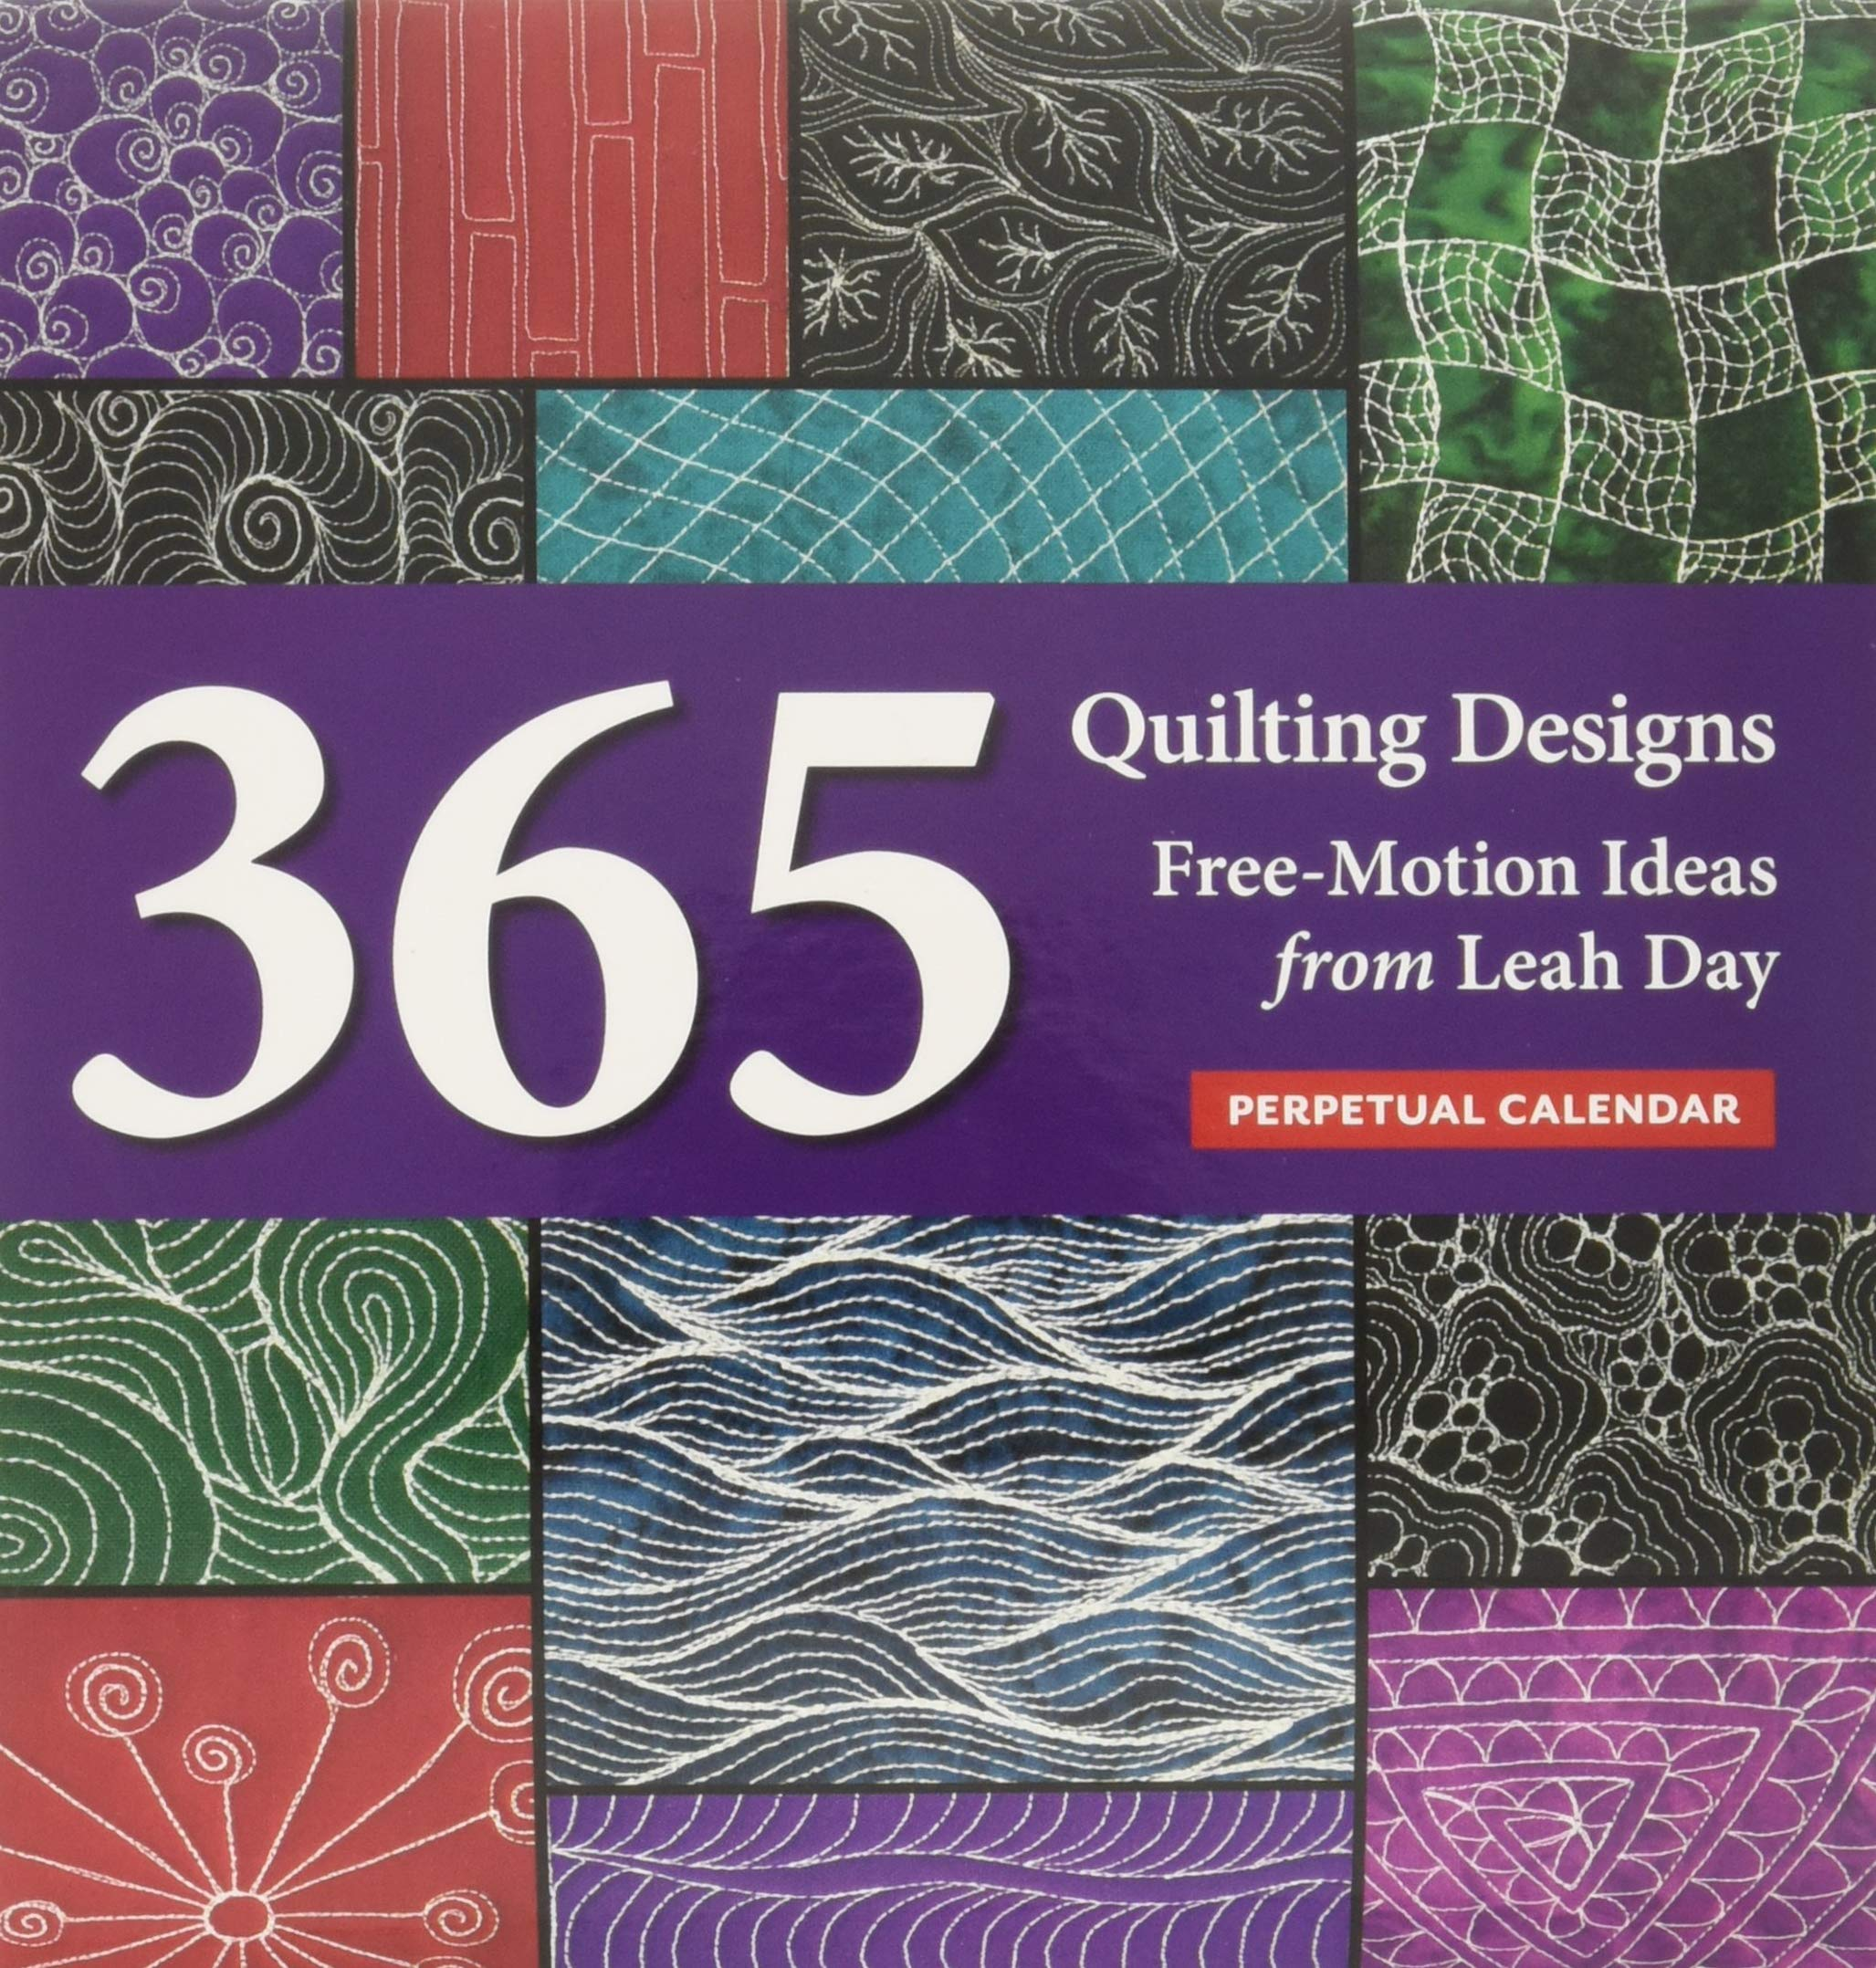 graphic relating to Free Printable Machine Quilting Designs identify Quilting Programs Perpetual Calendar: 365 Absolutely free-Movement Options